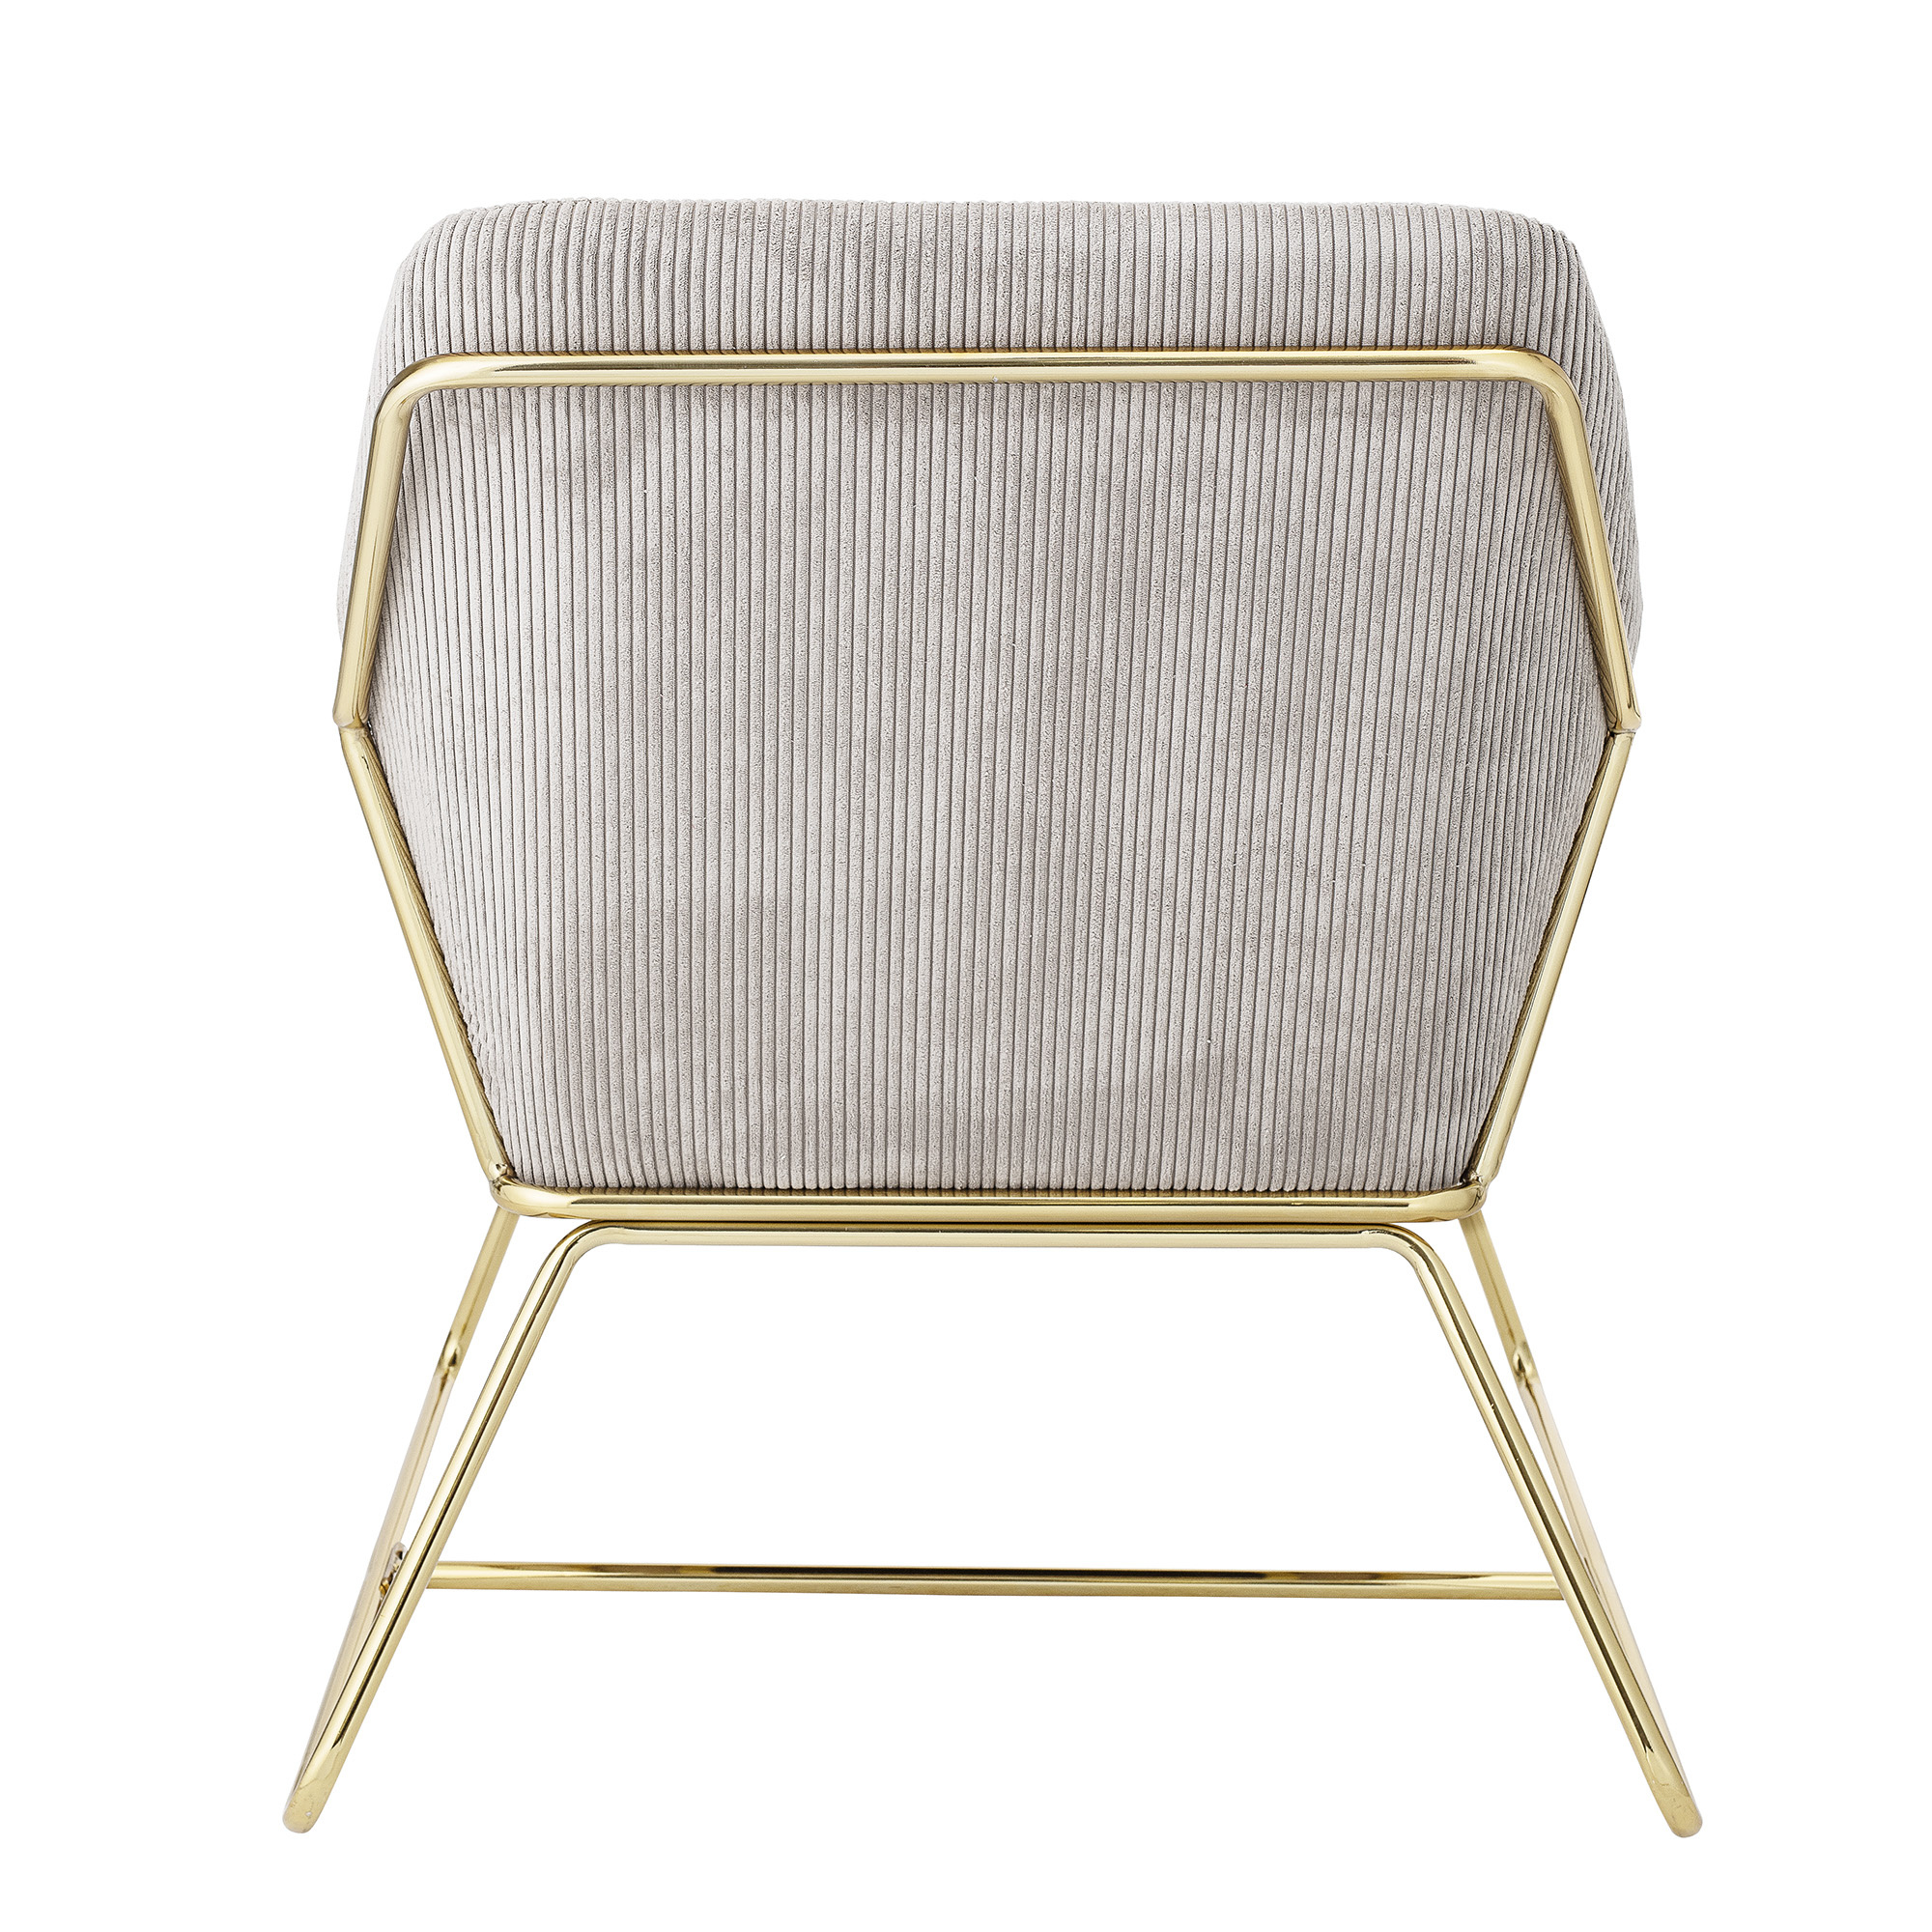 Lounge Sessel Natur Bass Lounge Sessel Natur Grau